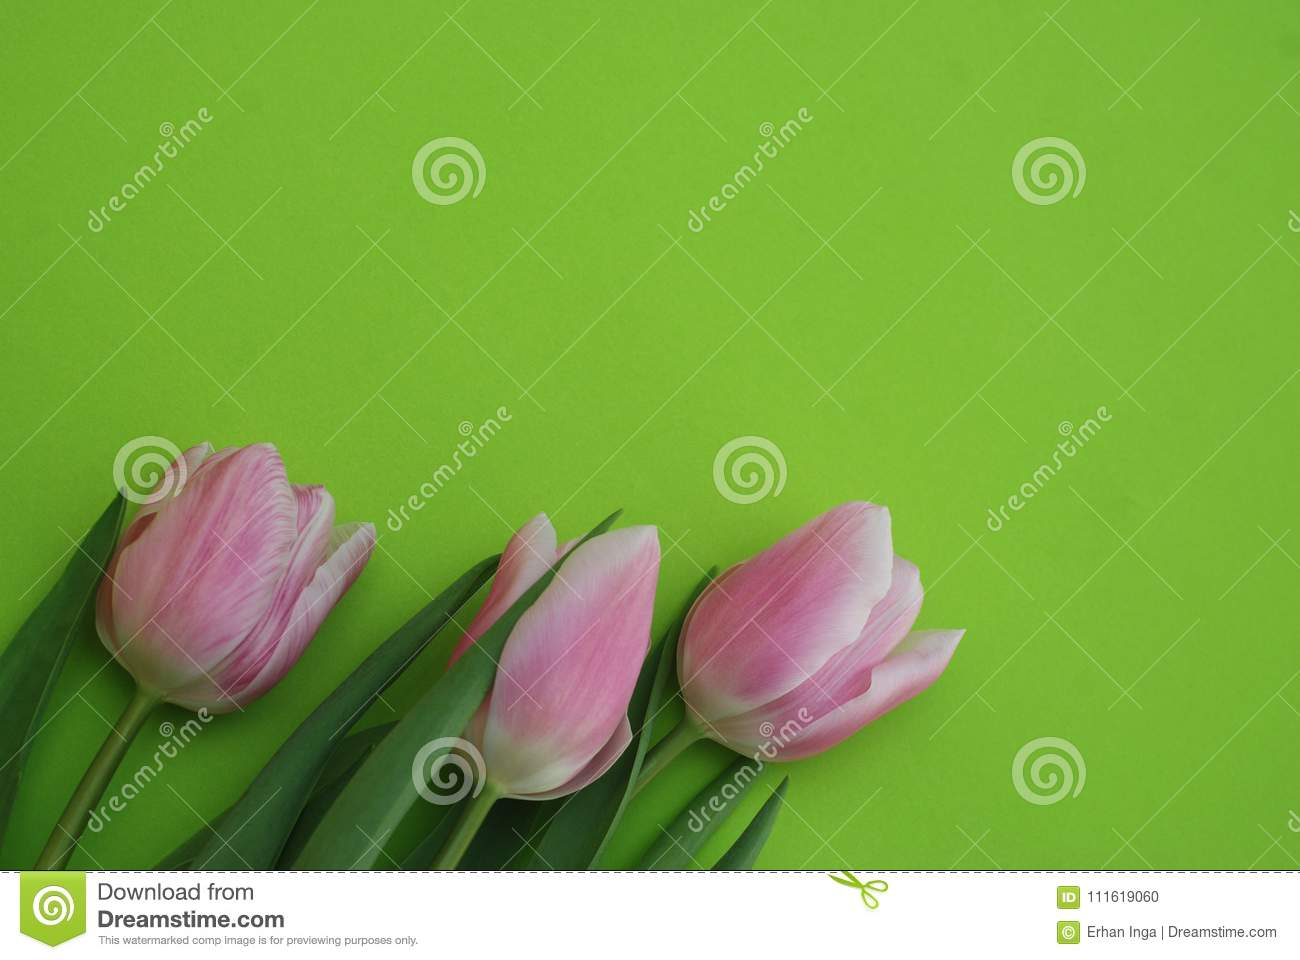 Pink Spring Tulips over a Green background, in a flat lay composition with Copy space. Spring flowers.